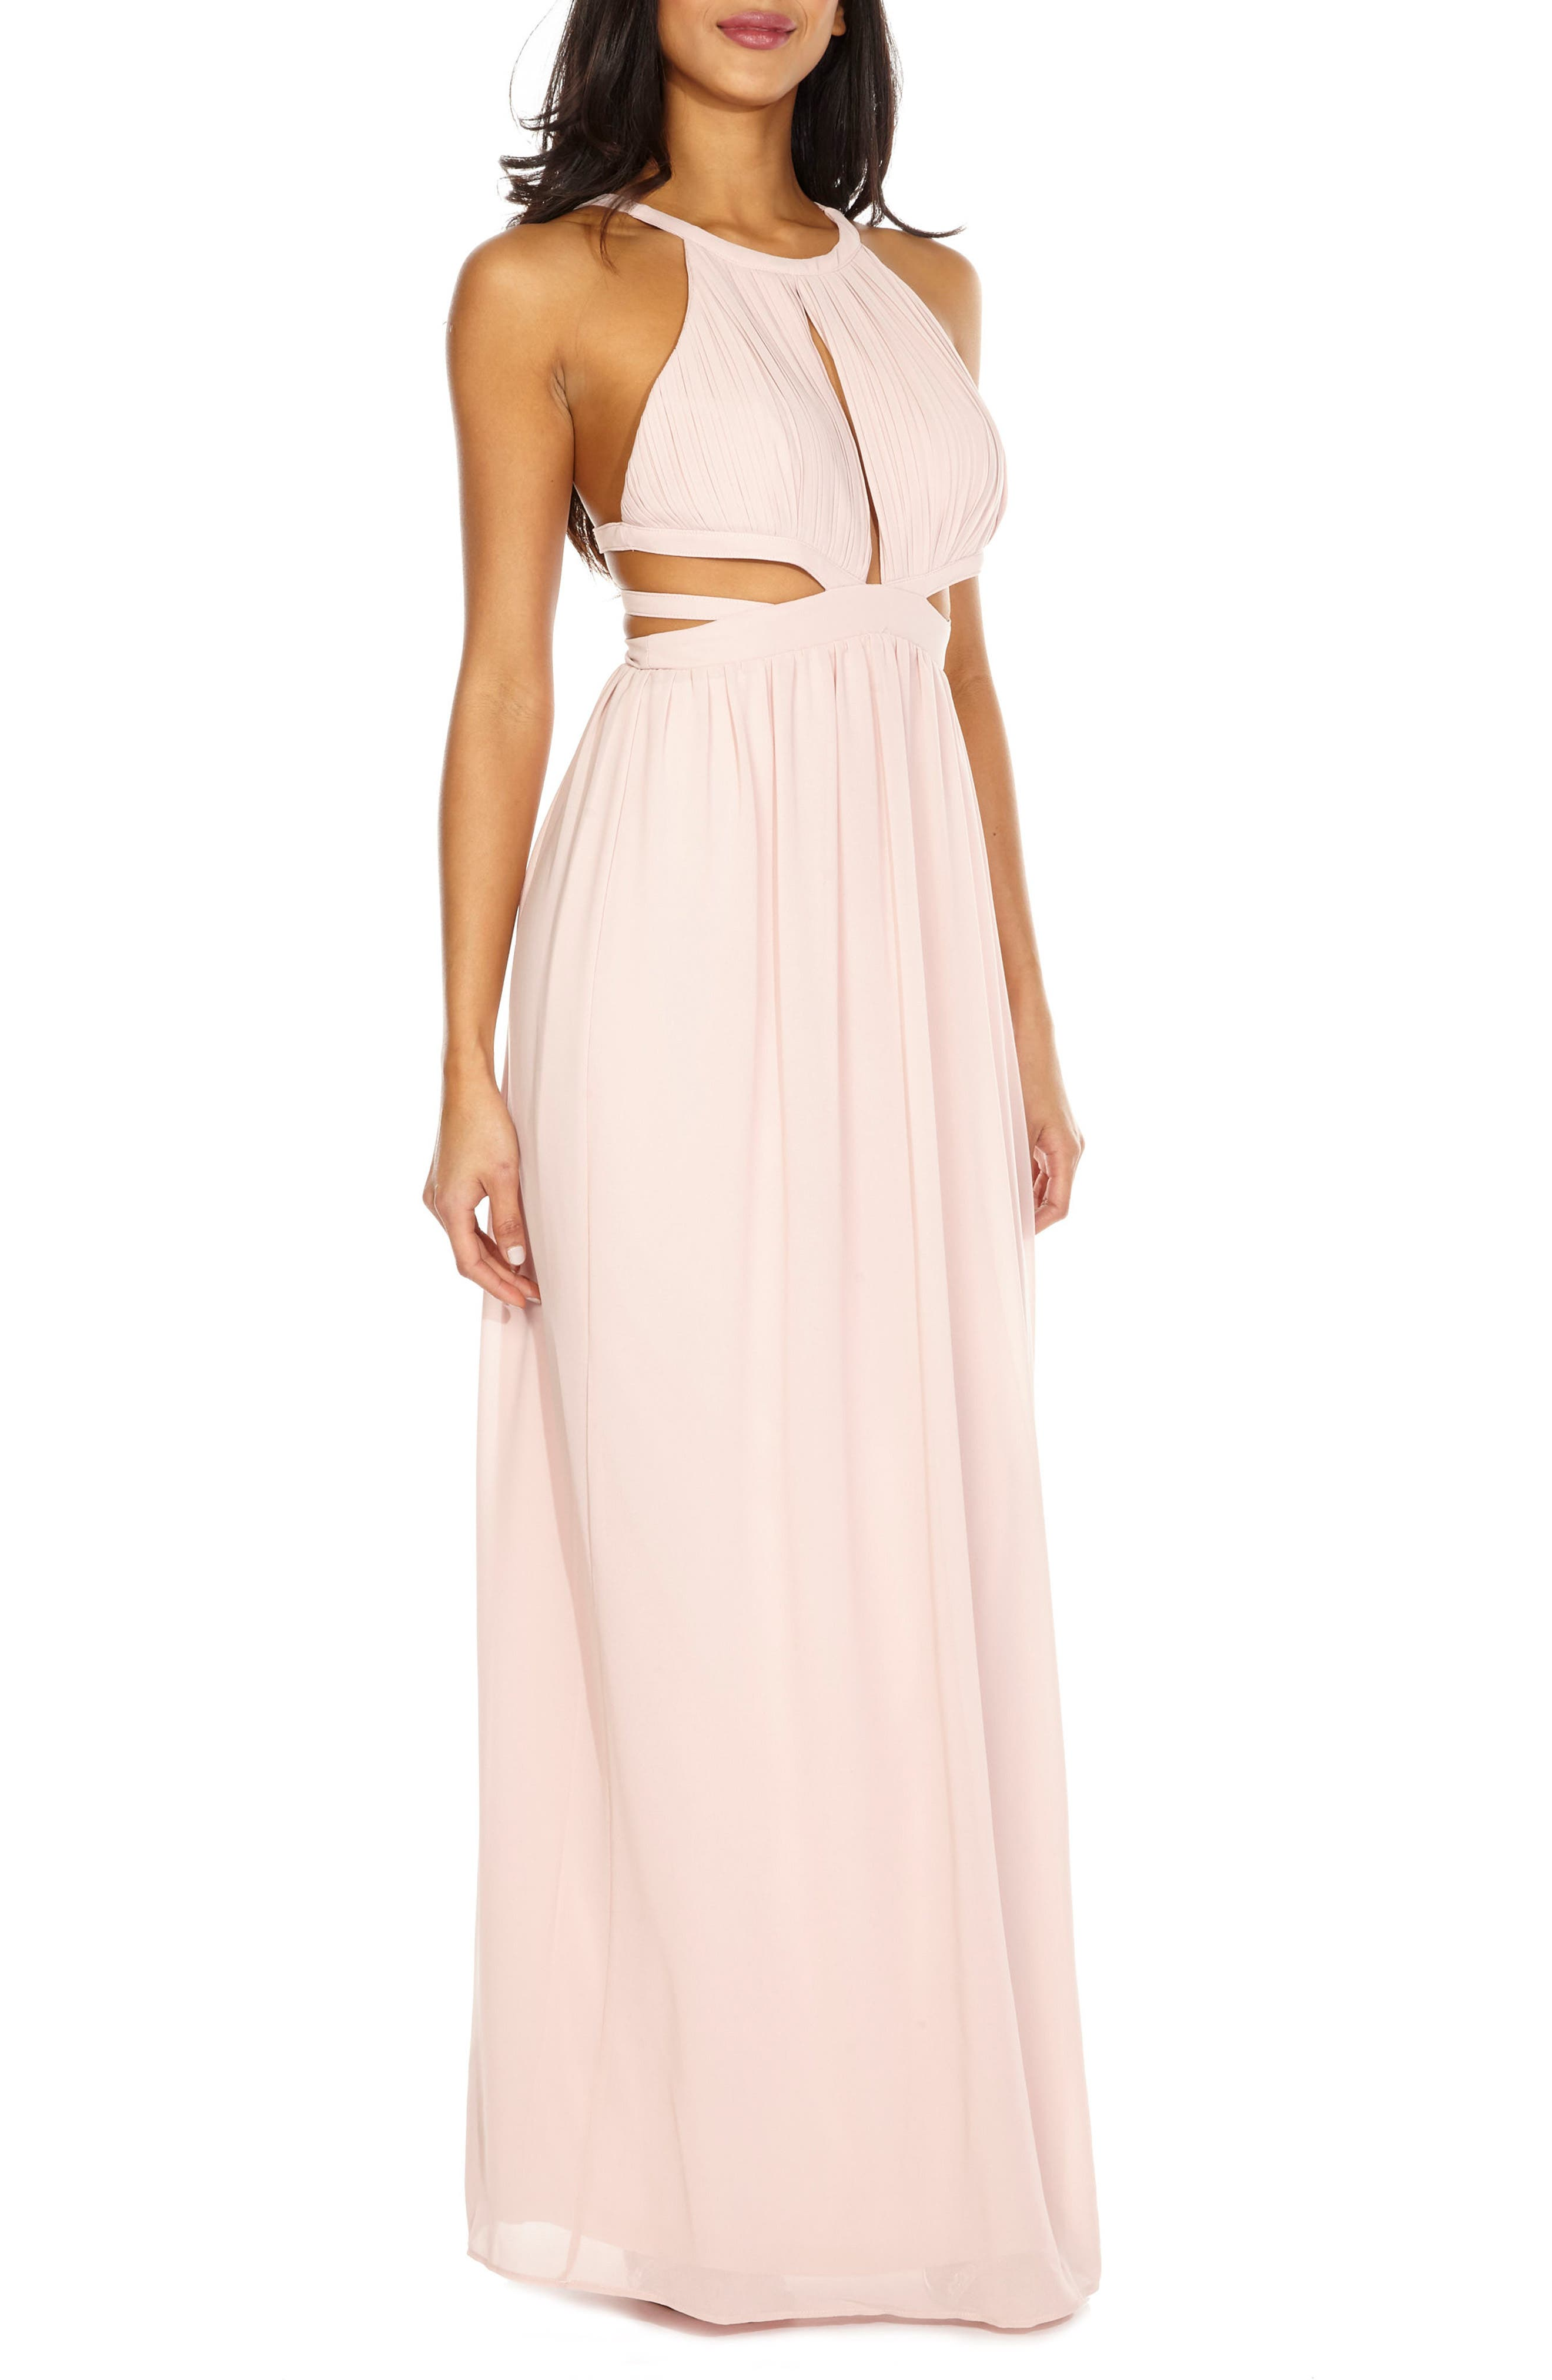 Evanthe Cutout Chiffon Gown,                             Alternate thumbnail 3, color,                             Pearl Pink